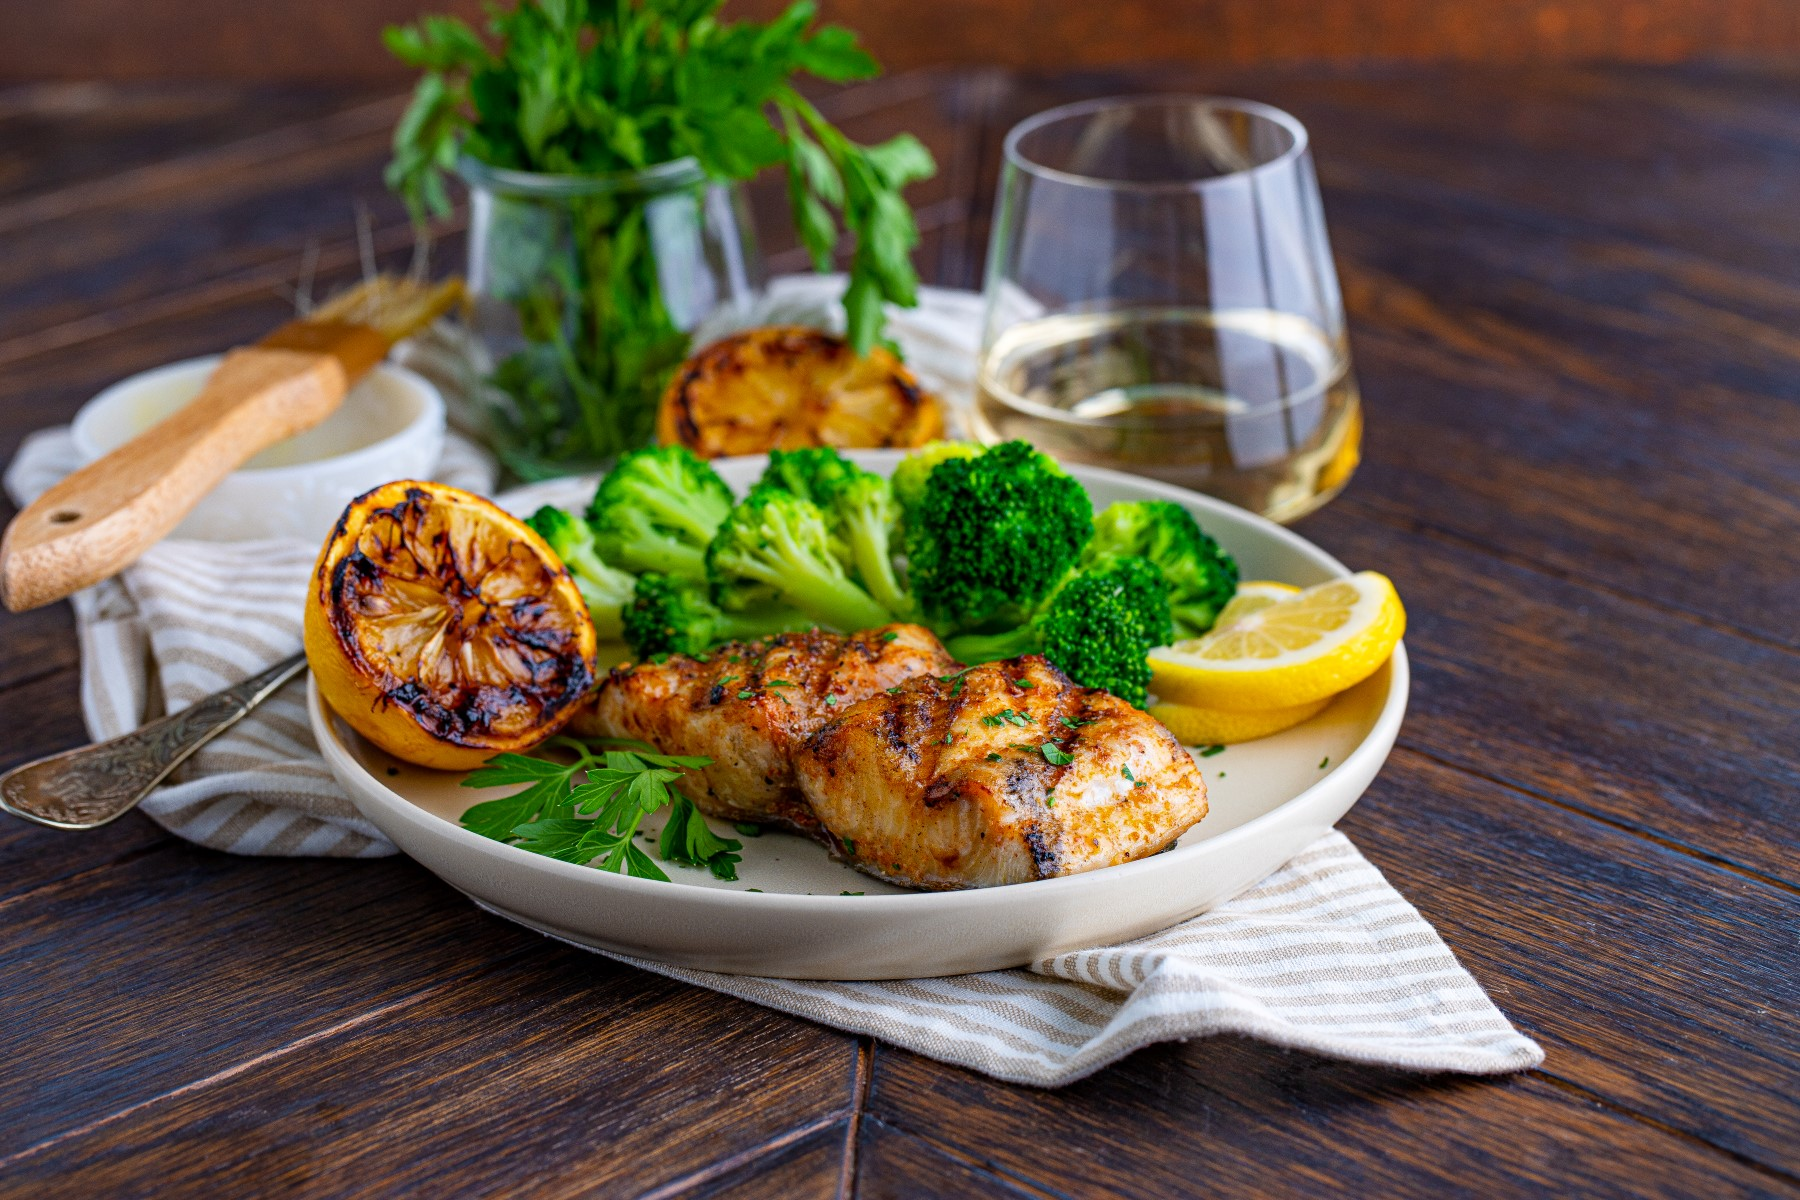 Grilled Mahi Mahi on a white plate with a grilled lemon halve and broccoli, with a glass of white wine.